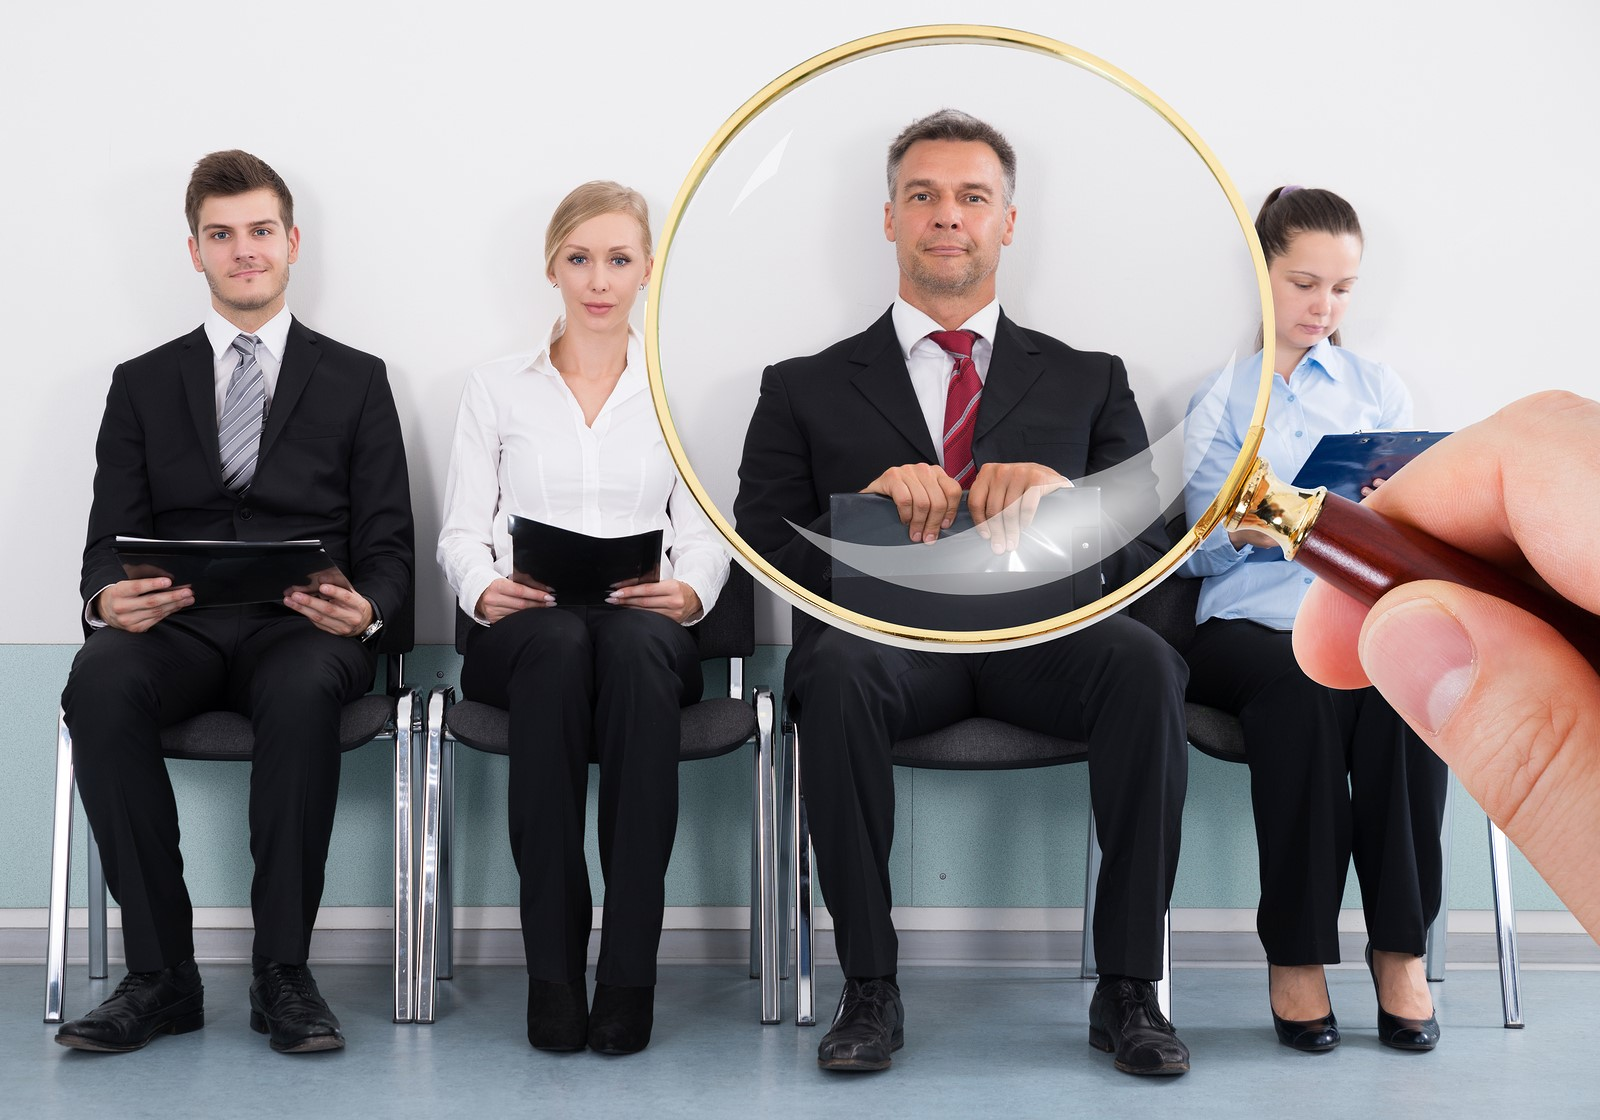 Recruiting Passive Candidates: How to Find Hidden Talent